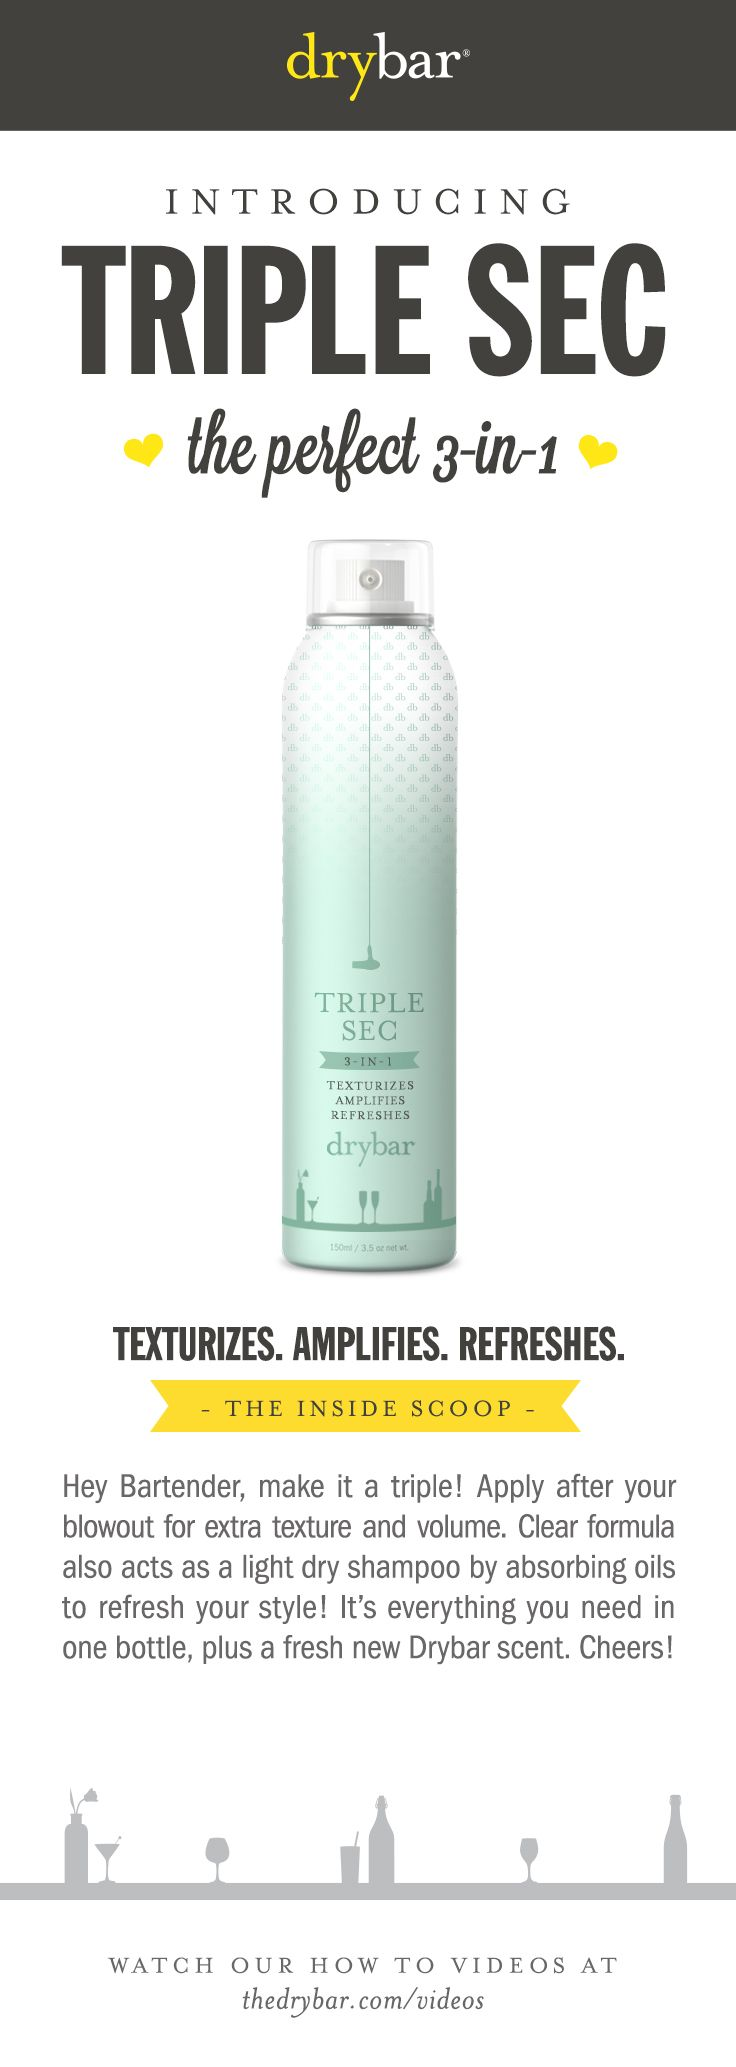 Hair Drybar TripleSec Beauty Sephora Make up Pinterest